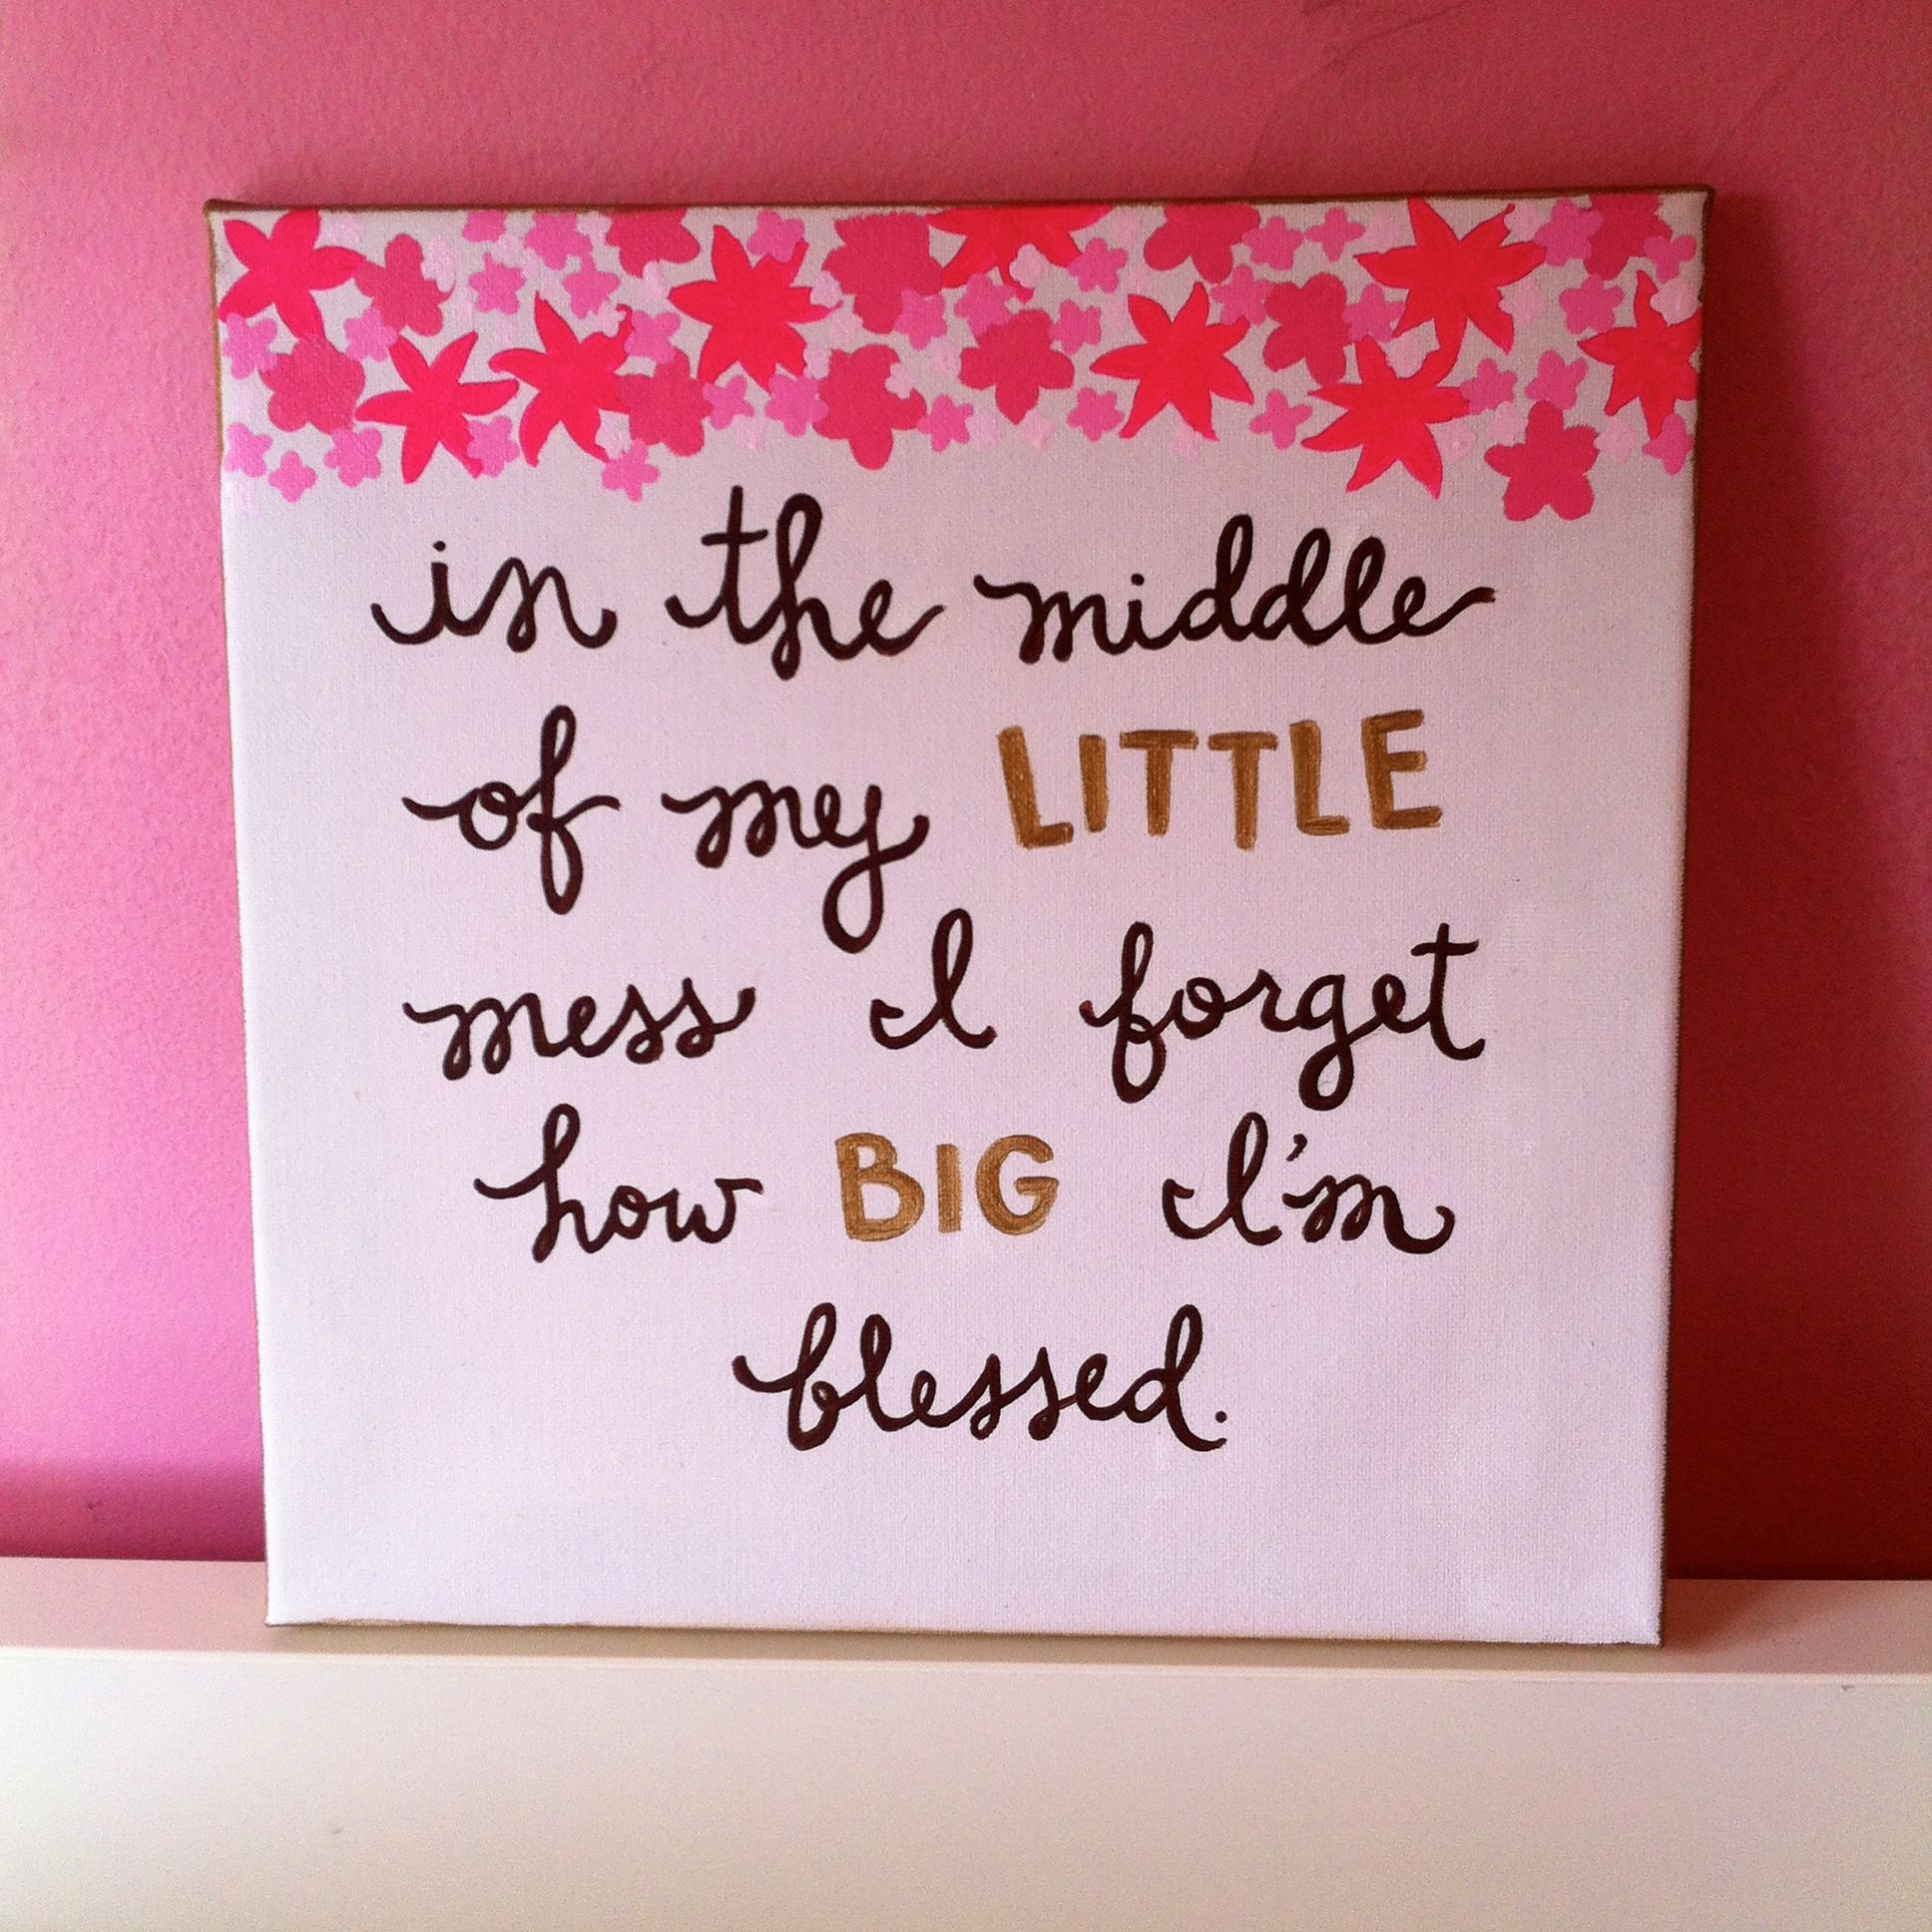 Cute Quotes On Canvas: Canvas For Little! This Would Be Cute For Big-little